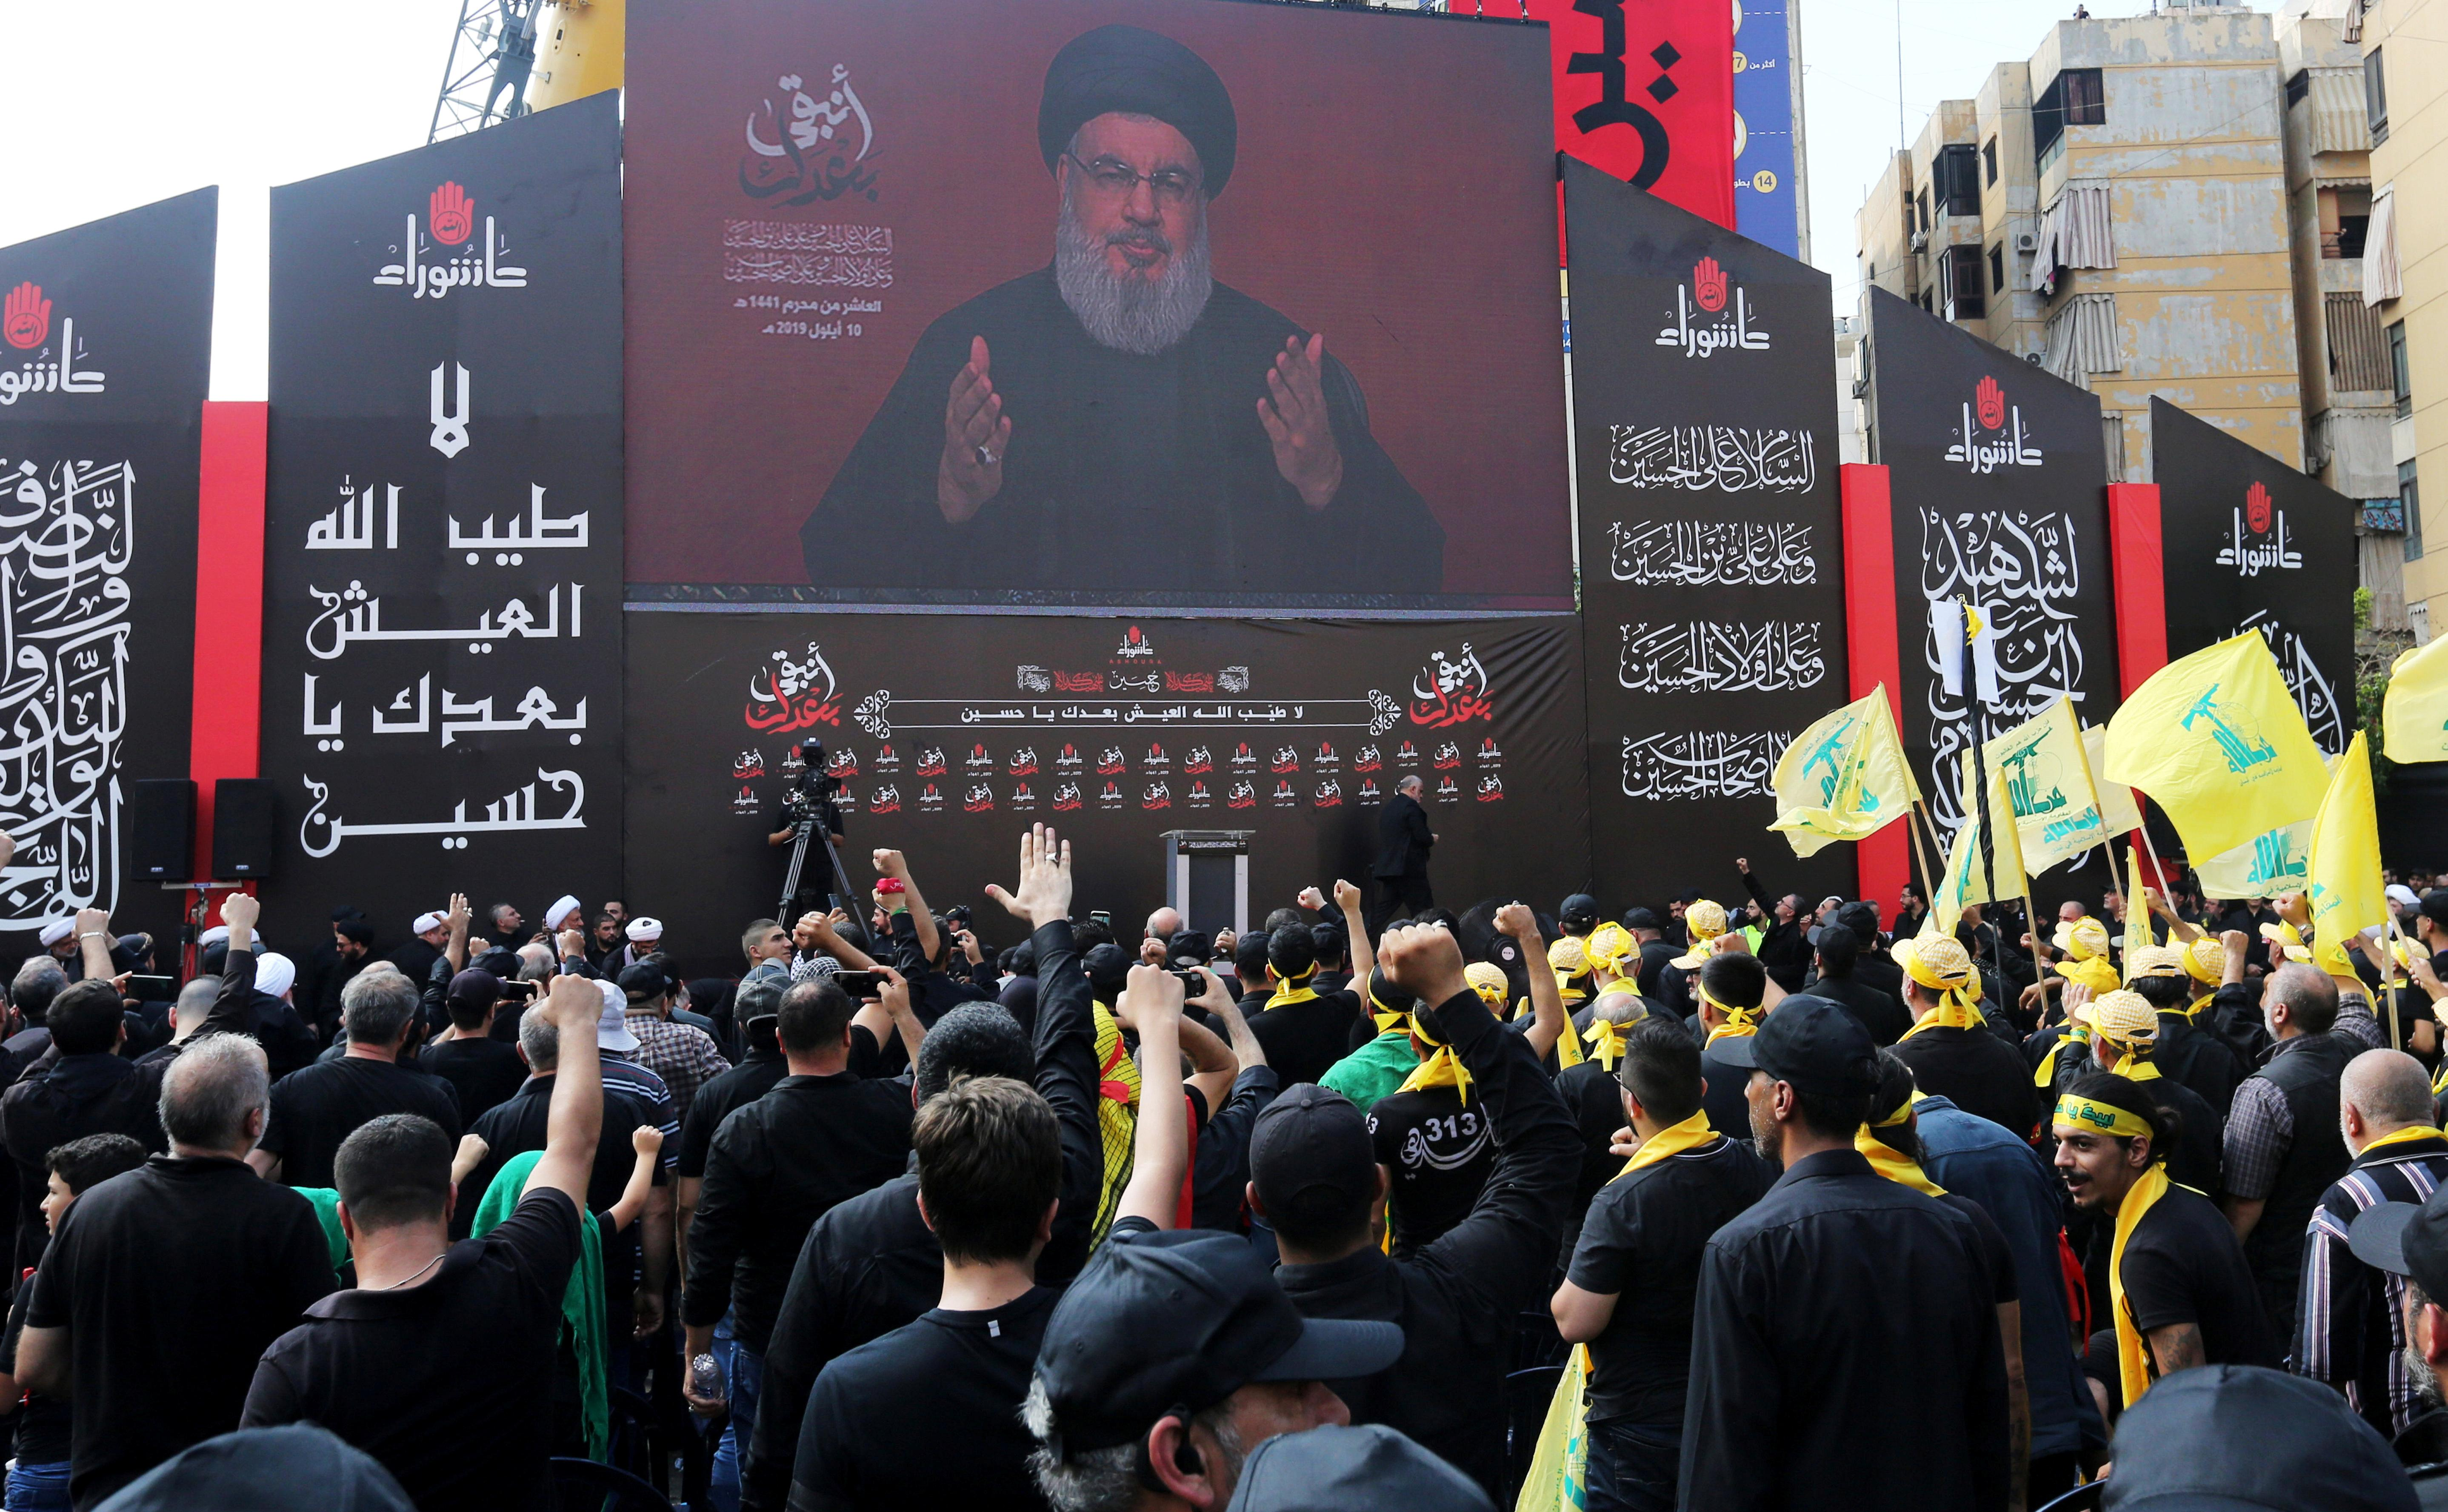 Hezbollah says it downed Israel drone to boost deterrence